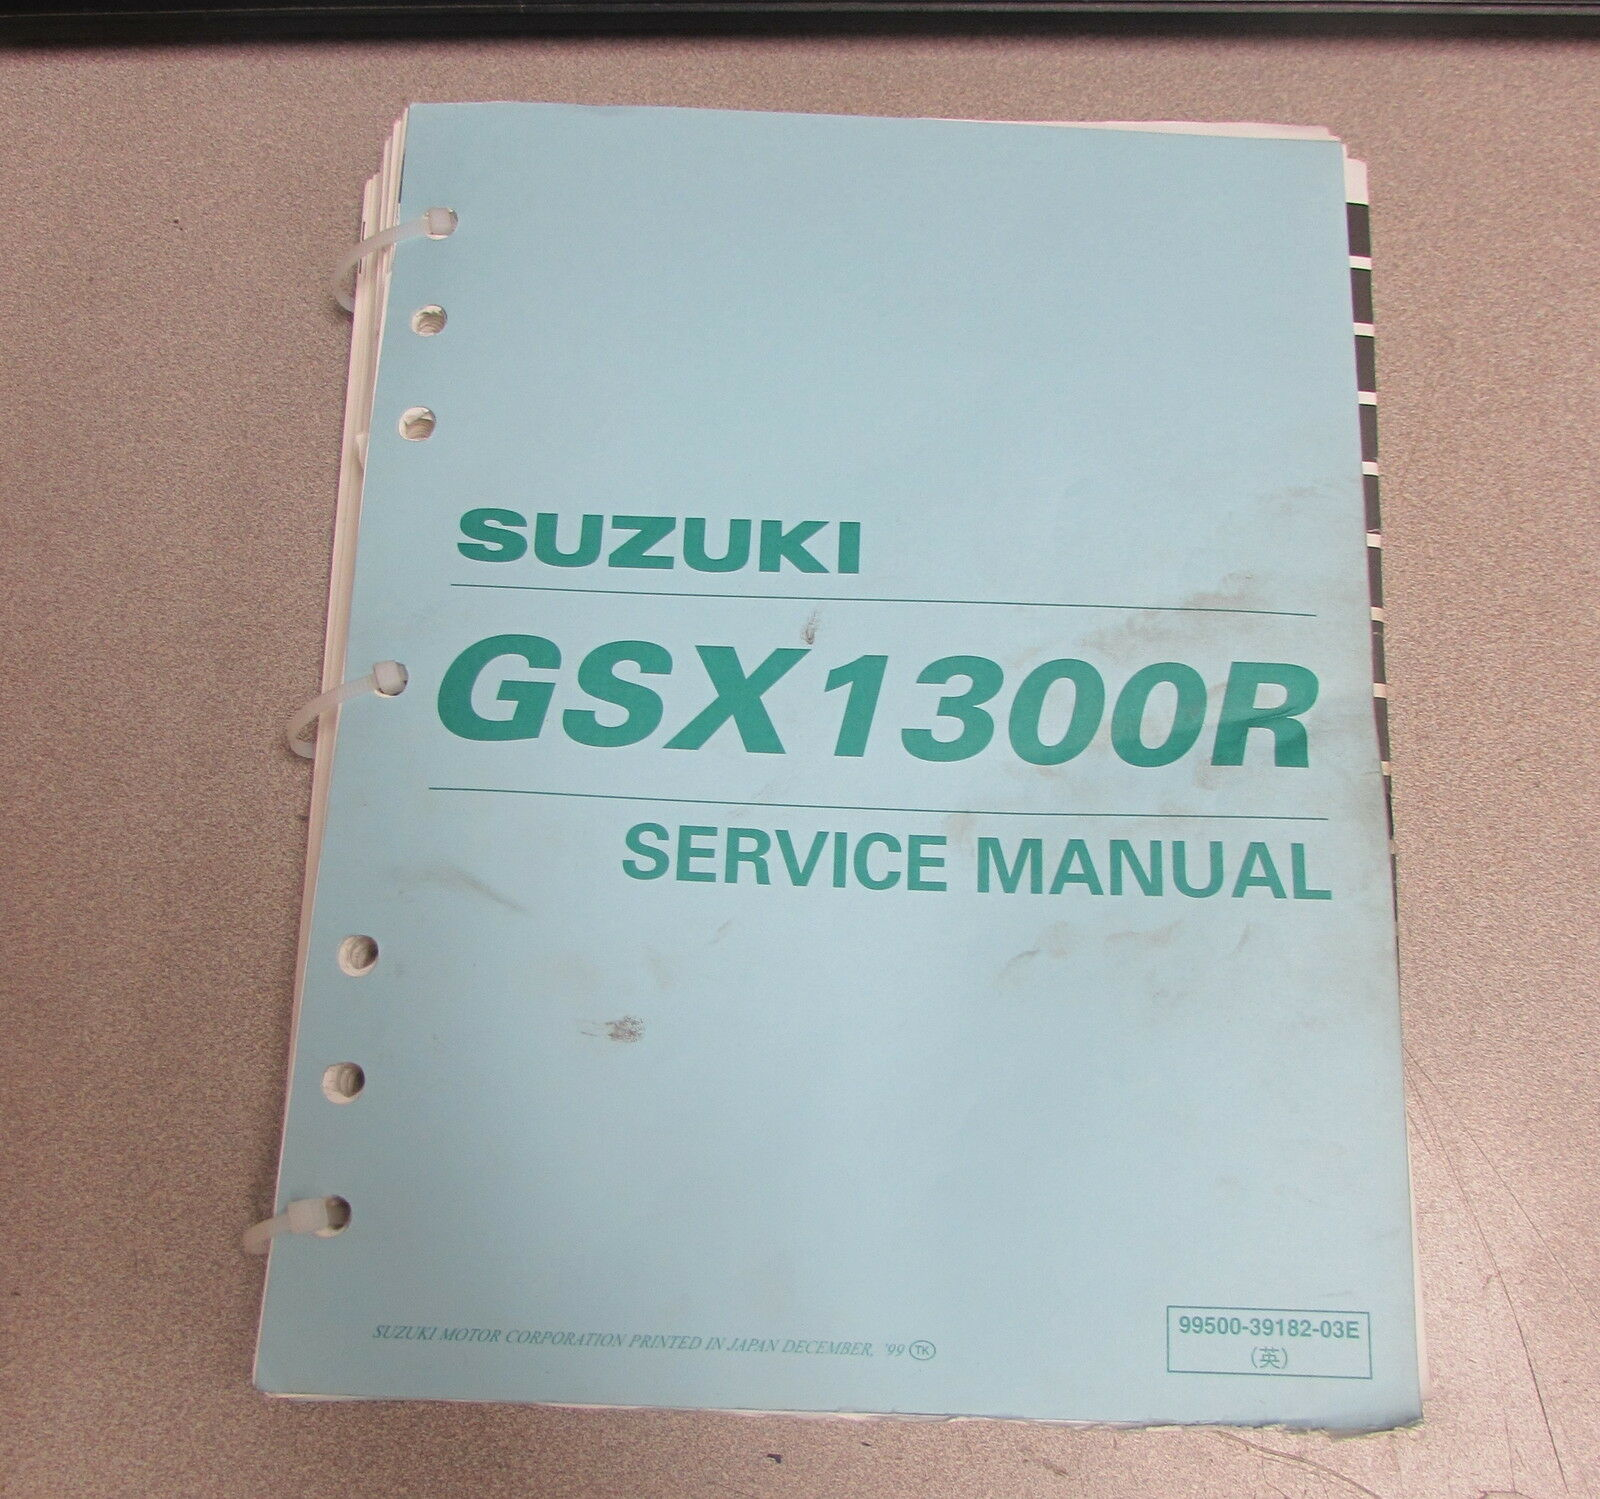 1999 Suzuki GSX1300R Service Repair ATV Motorcycle Manual 99500-39182-03E 1  of 1Only 1 available ...